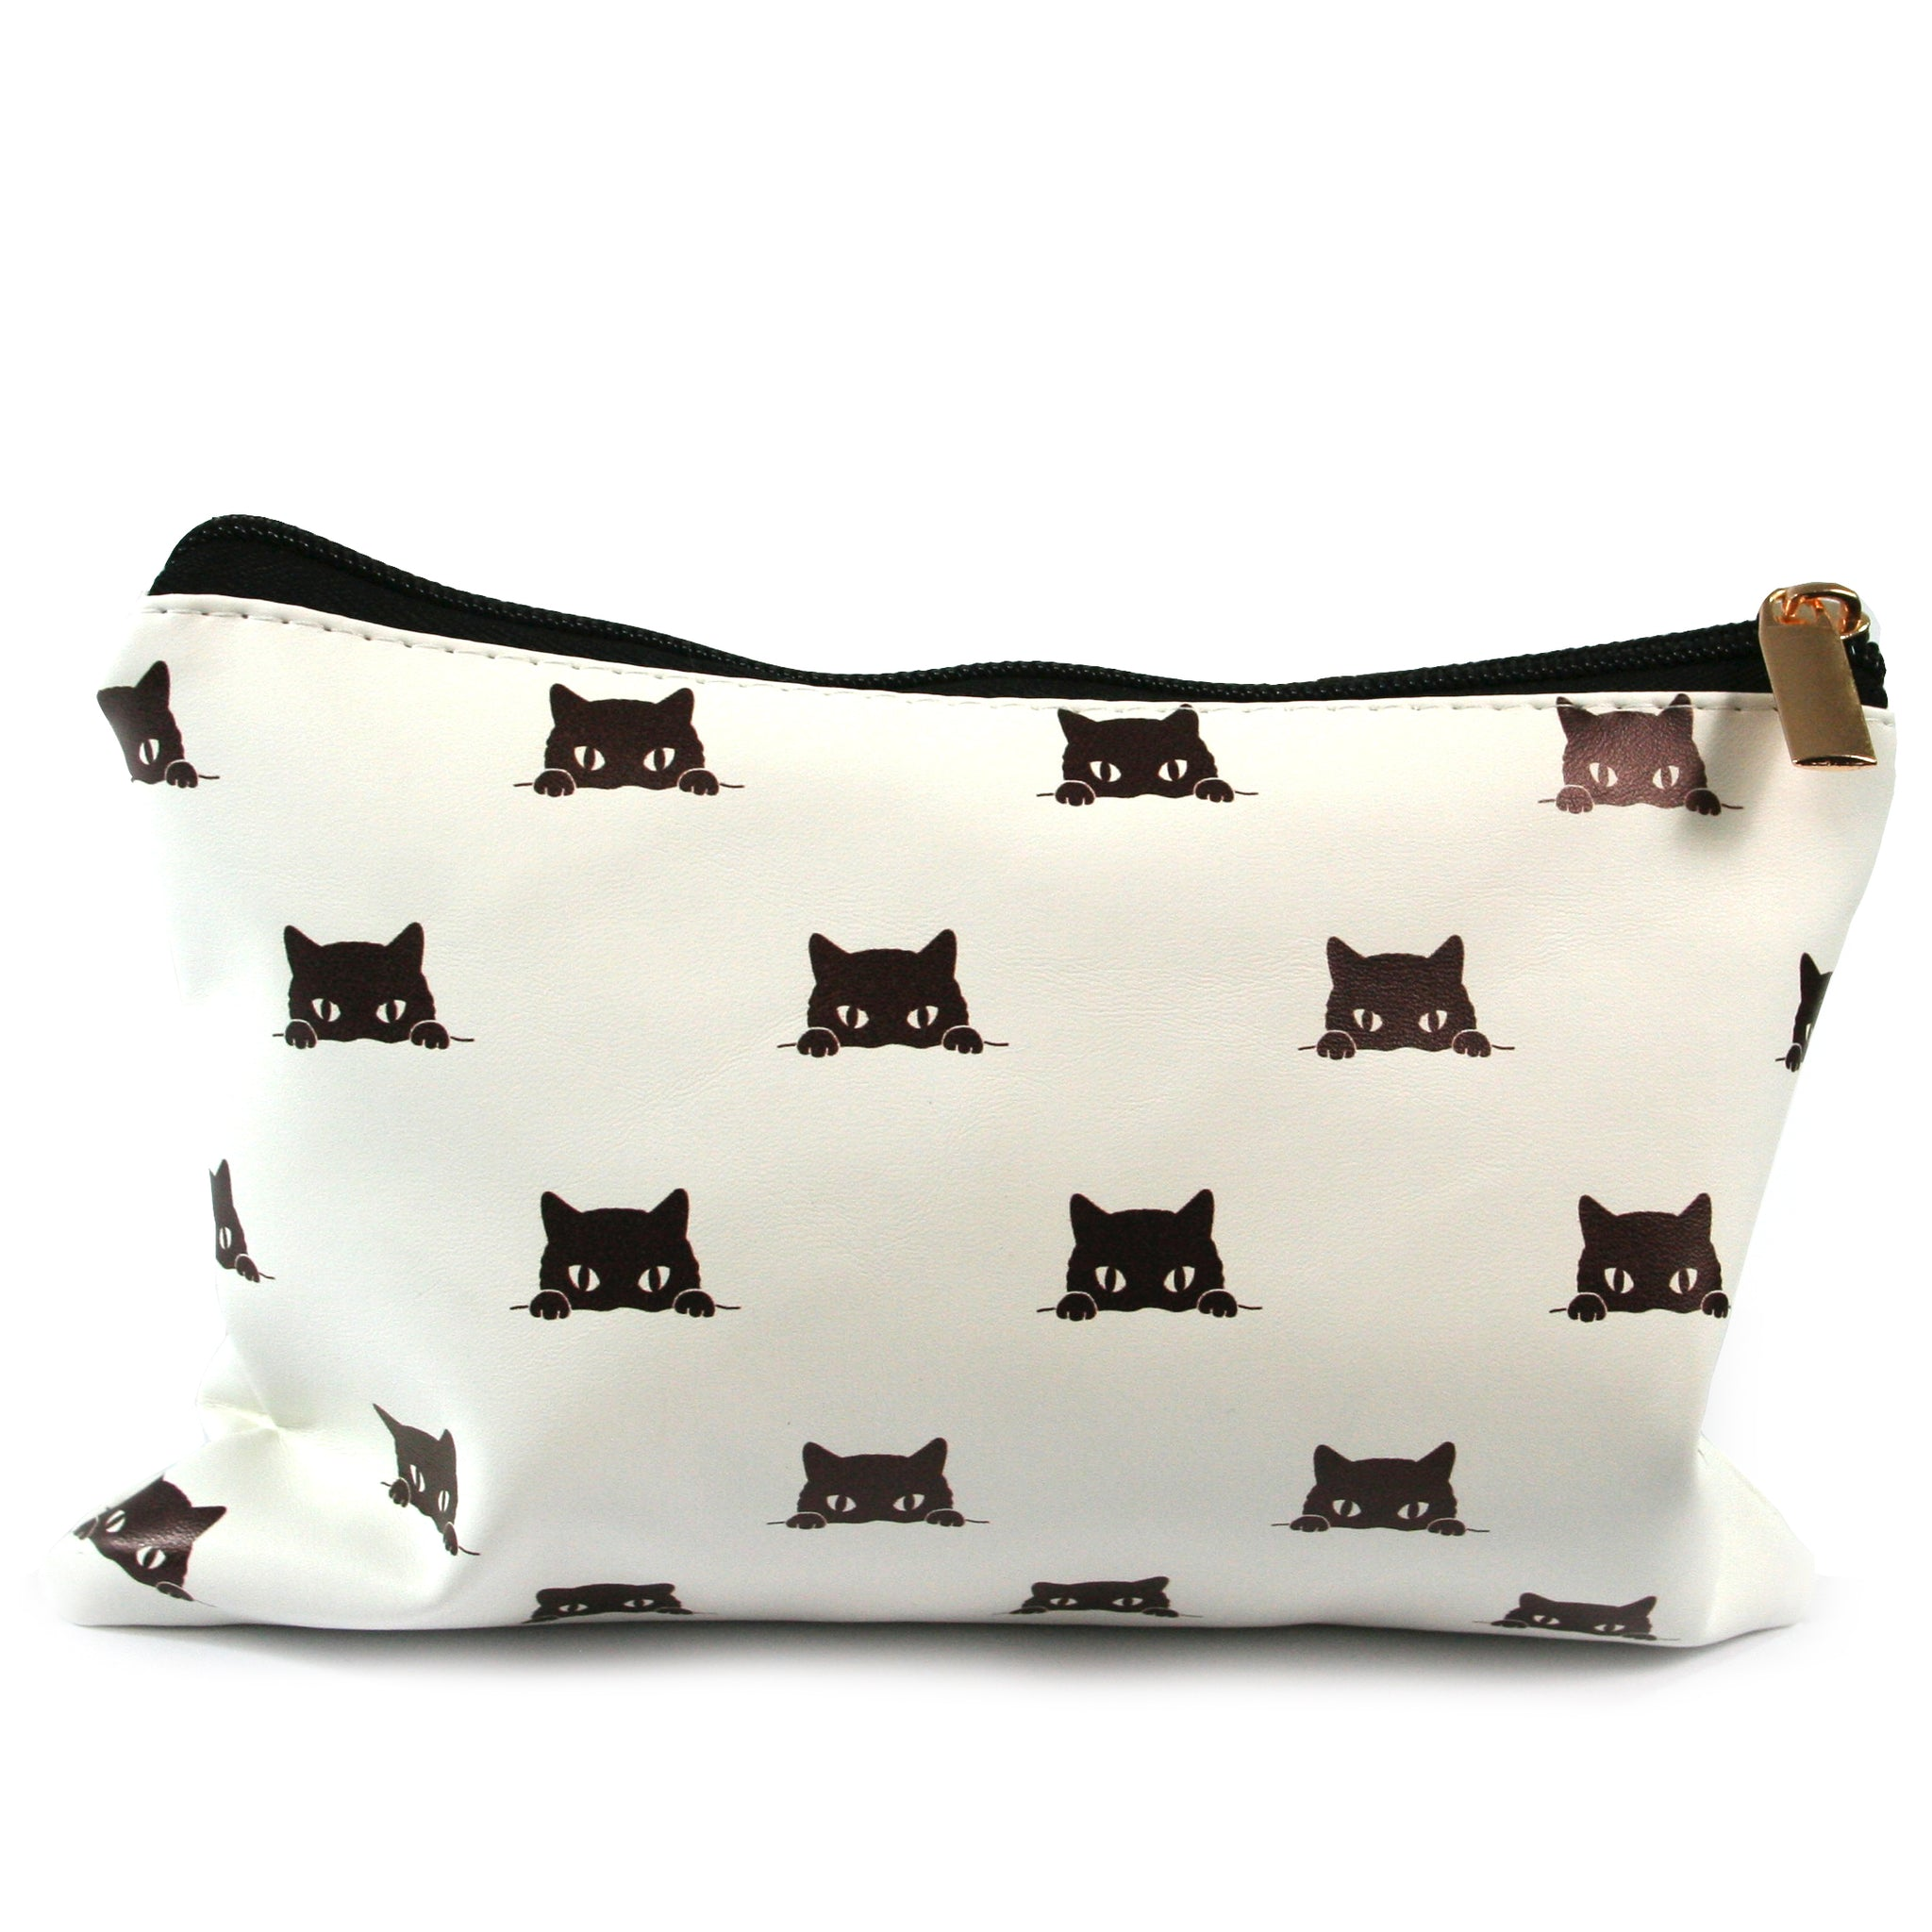 Black Cat Peeping Make-Up / Clutch Bag / Pencil Case